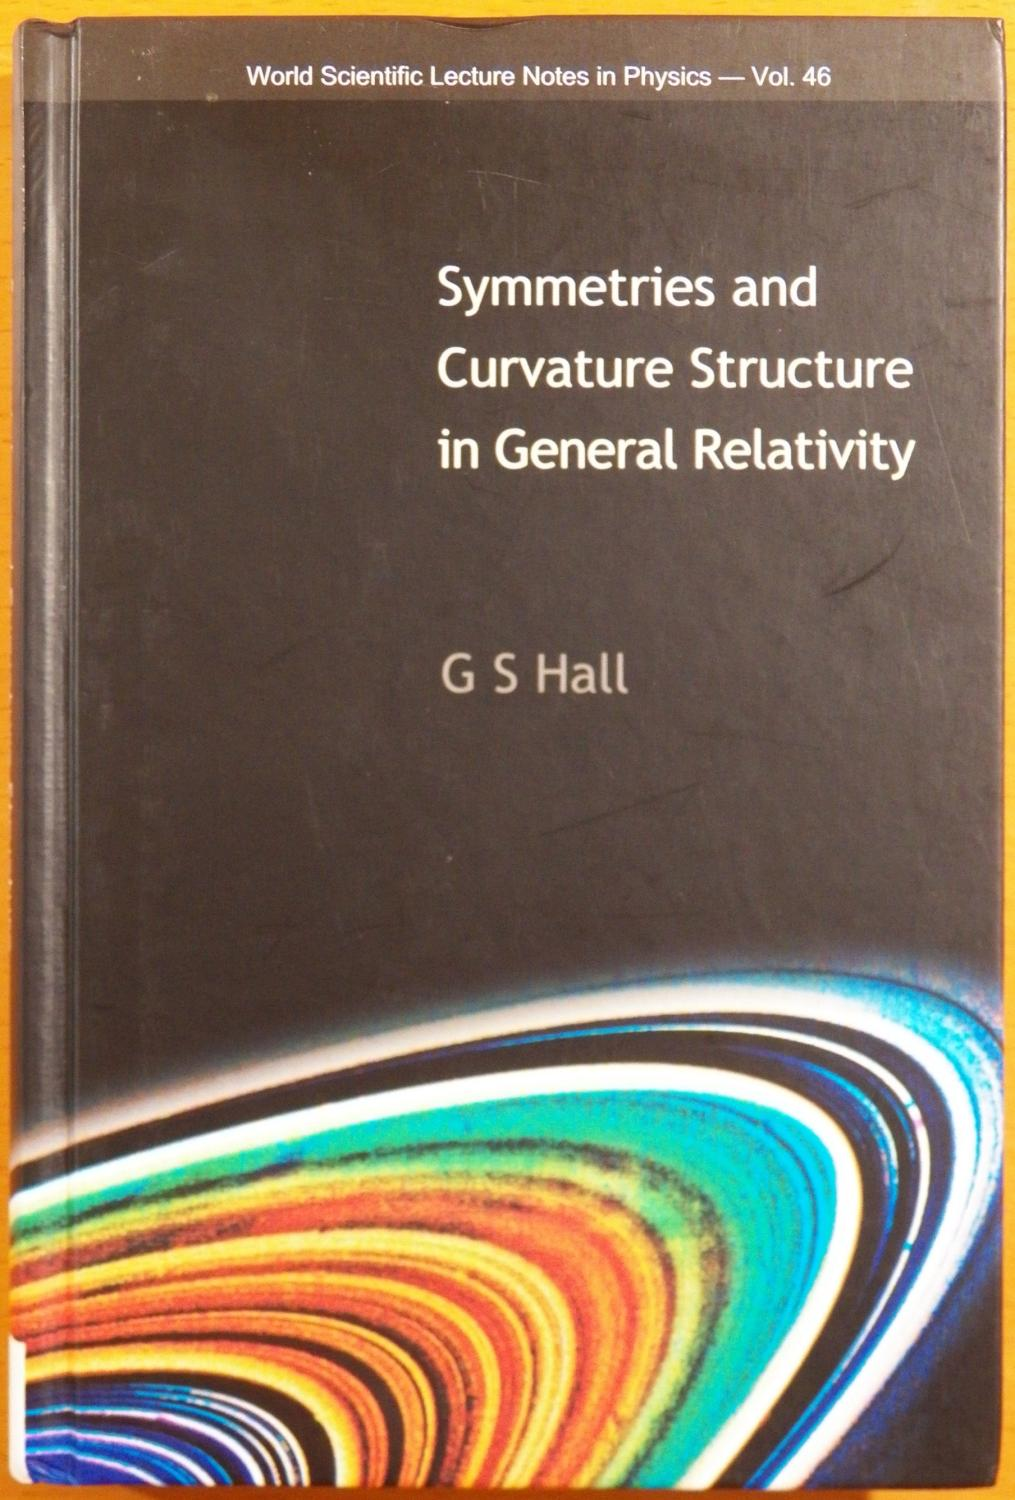 Symmetries and Curvature Structure in General Relativity